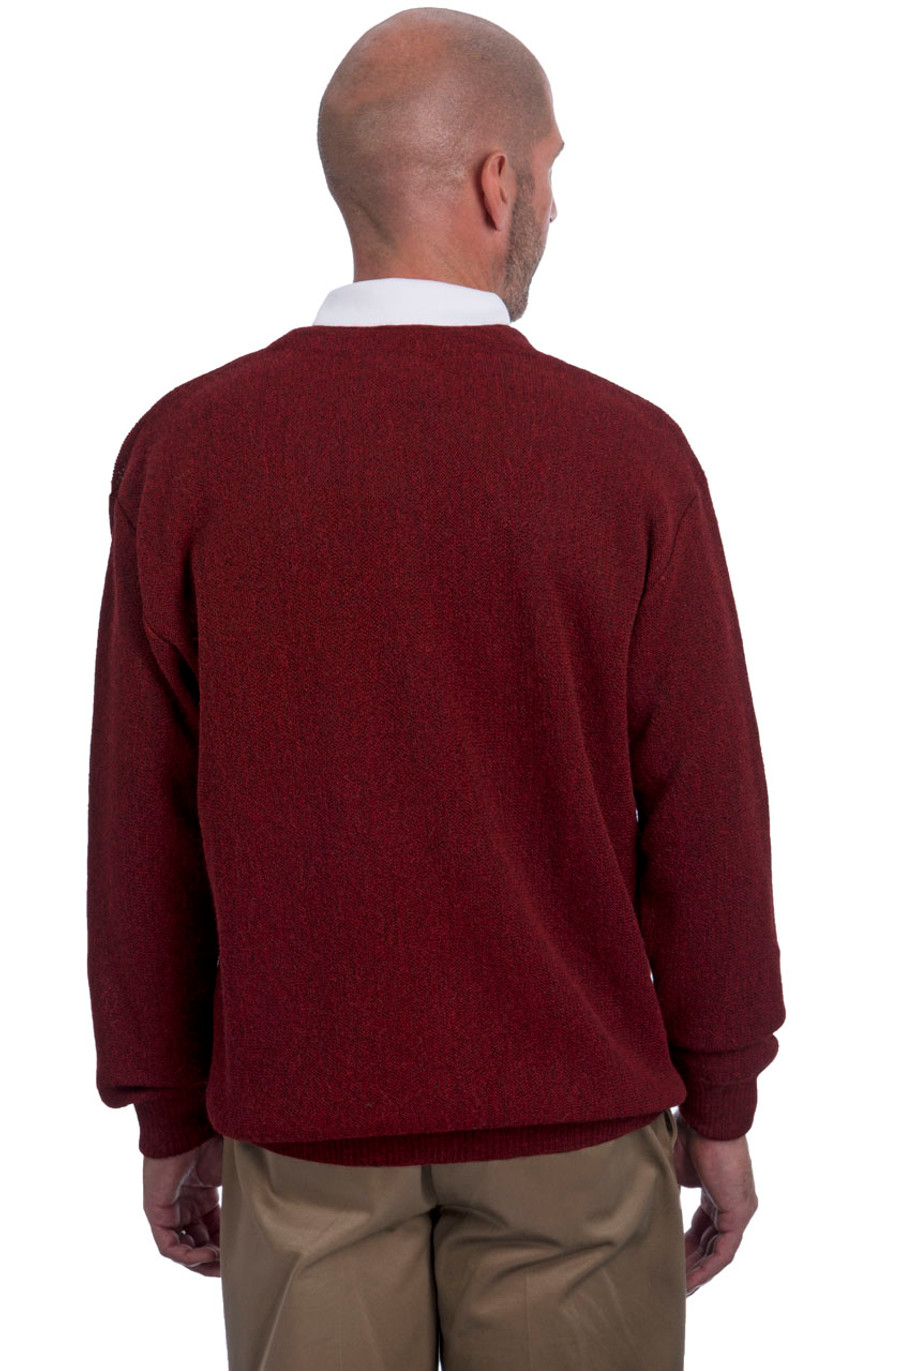 Men's Alpaca Button Down Cardigan with pockets - many great colors